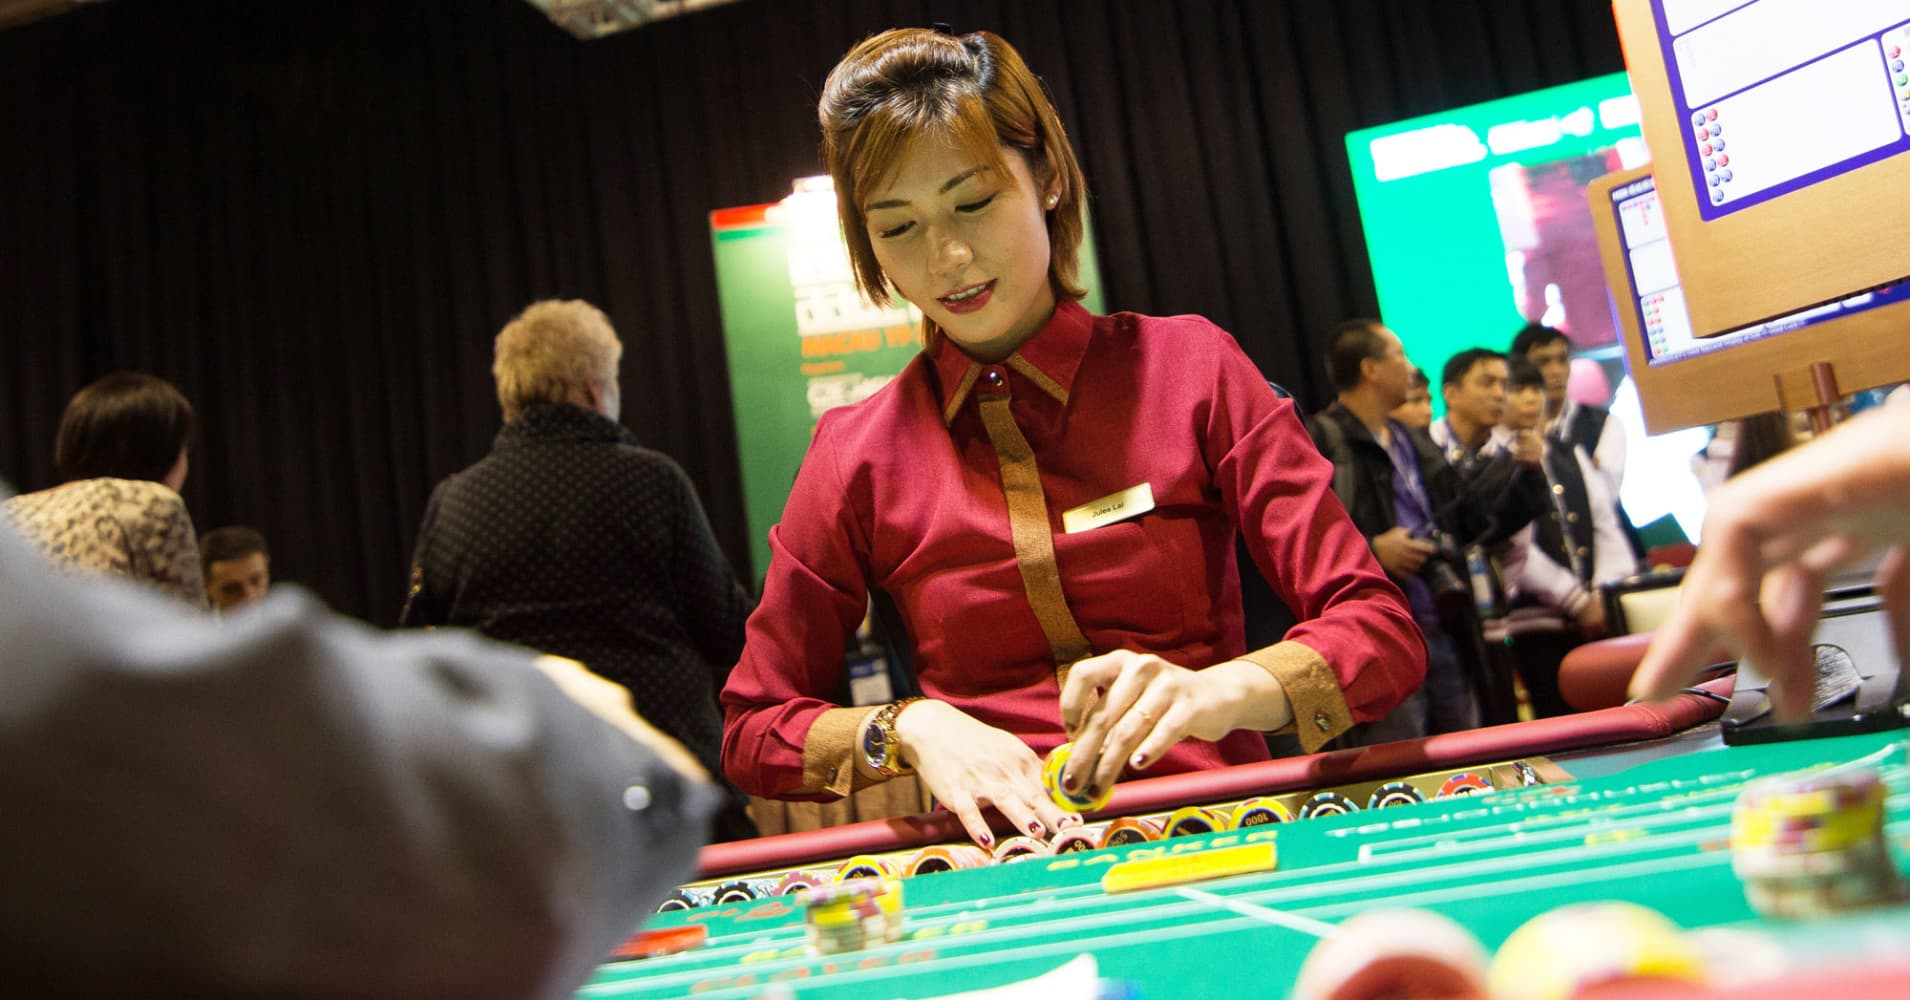 Stocks making the biggest moves after hours: Las Vegas Sands, Pier 1, Atlassian and more